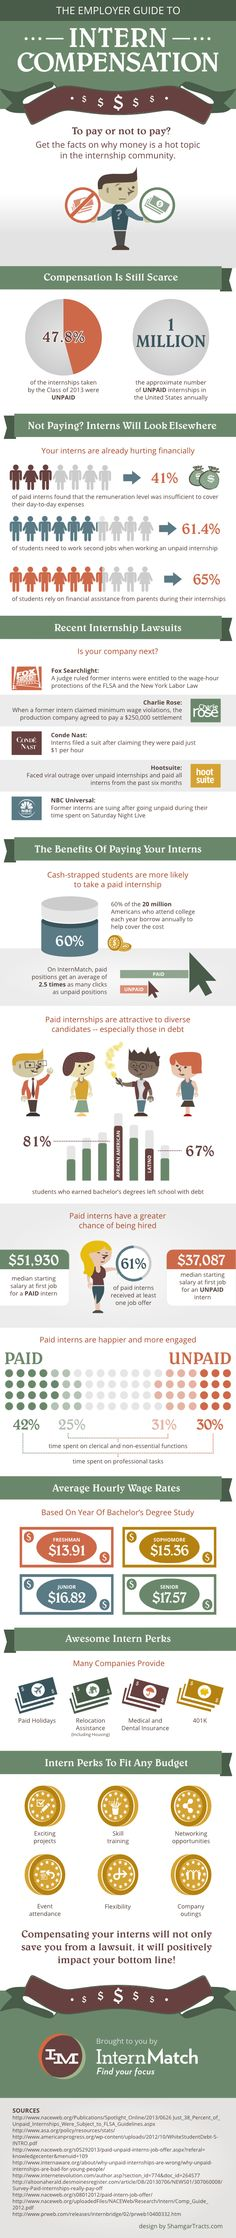 To Pay or Not To Pay: The Ongoing Discussion on Intern Compensation » University Recruiter Blog